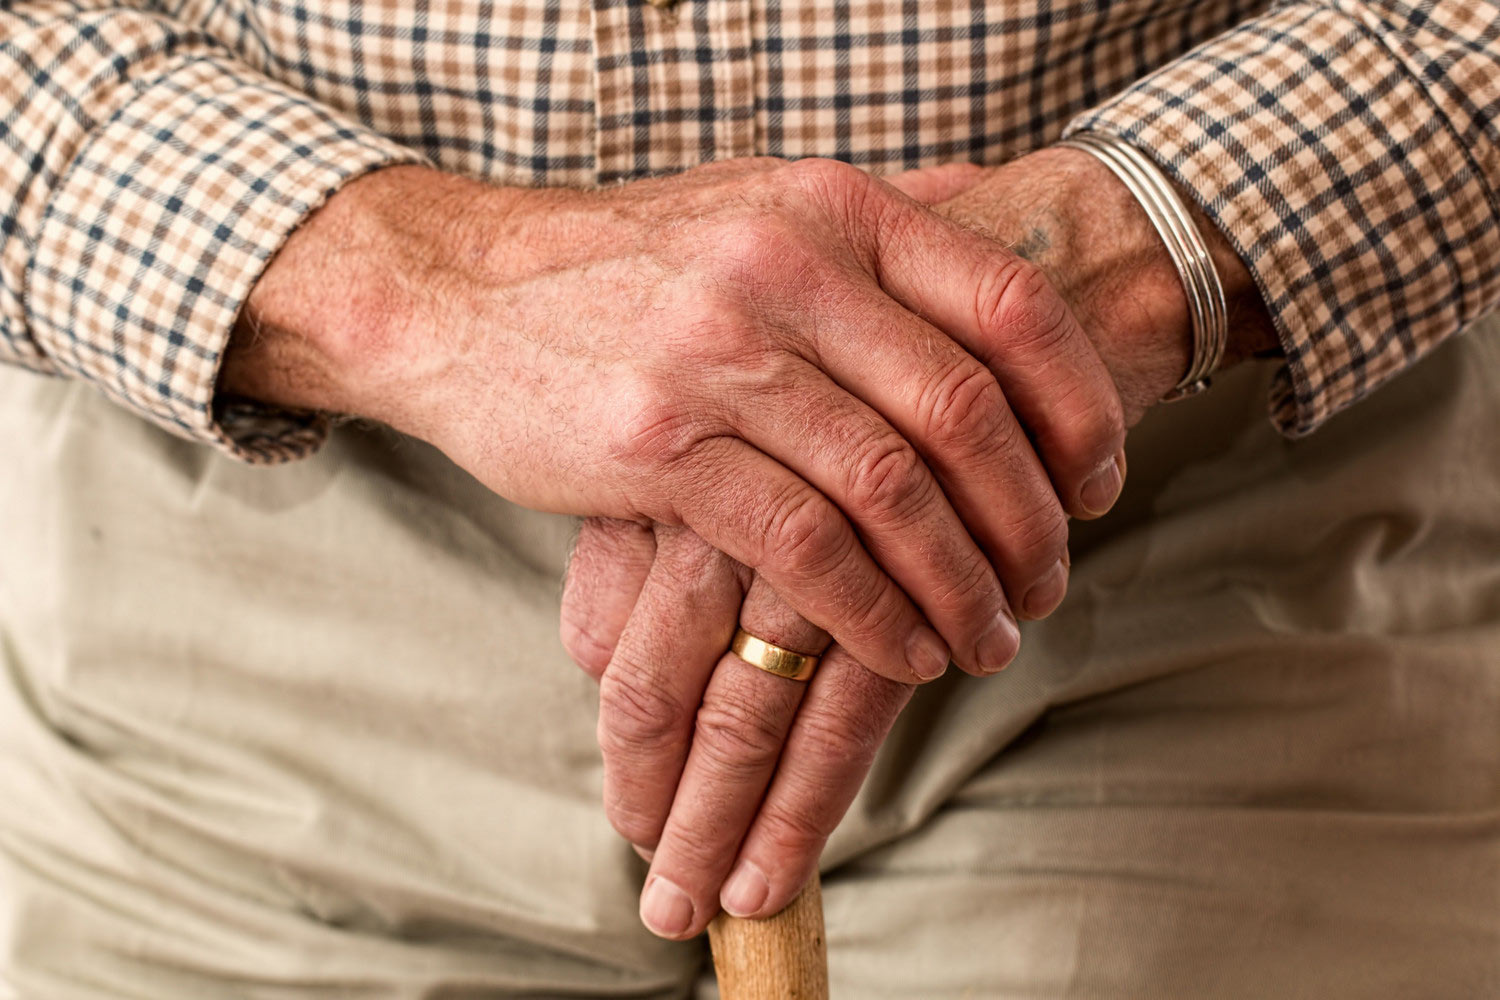 7 Issues Employees Face When Confronted With Senior Care